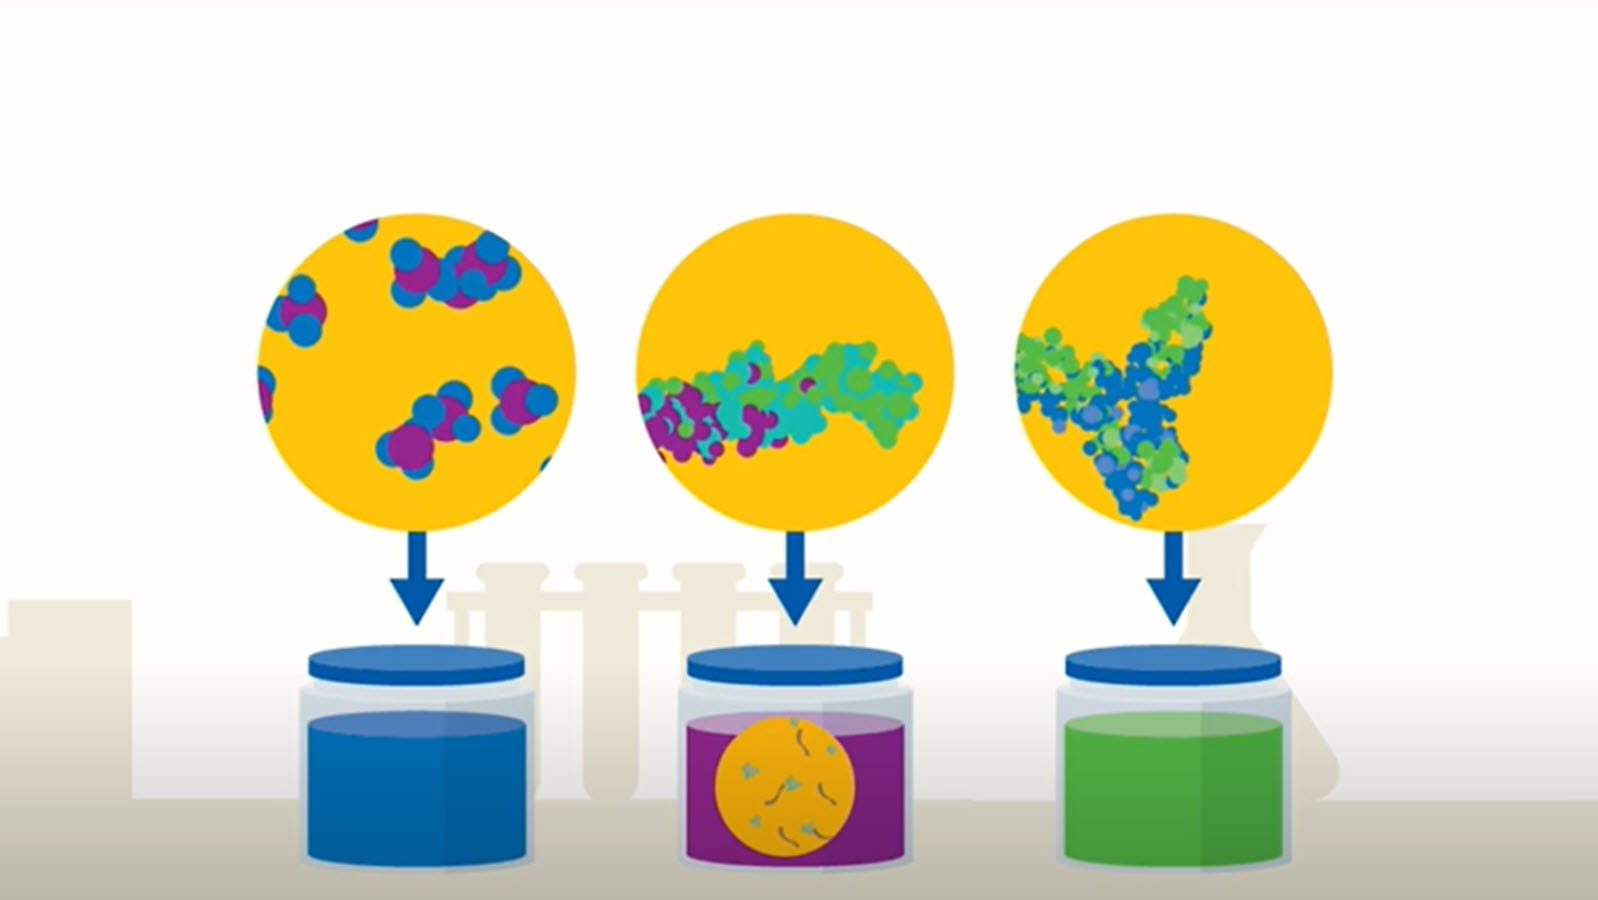 Illustration of different proteins being extracted from plasma